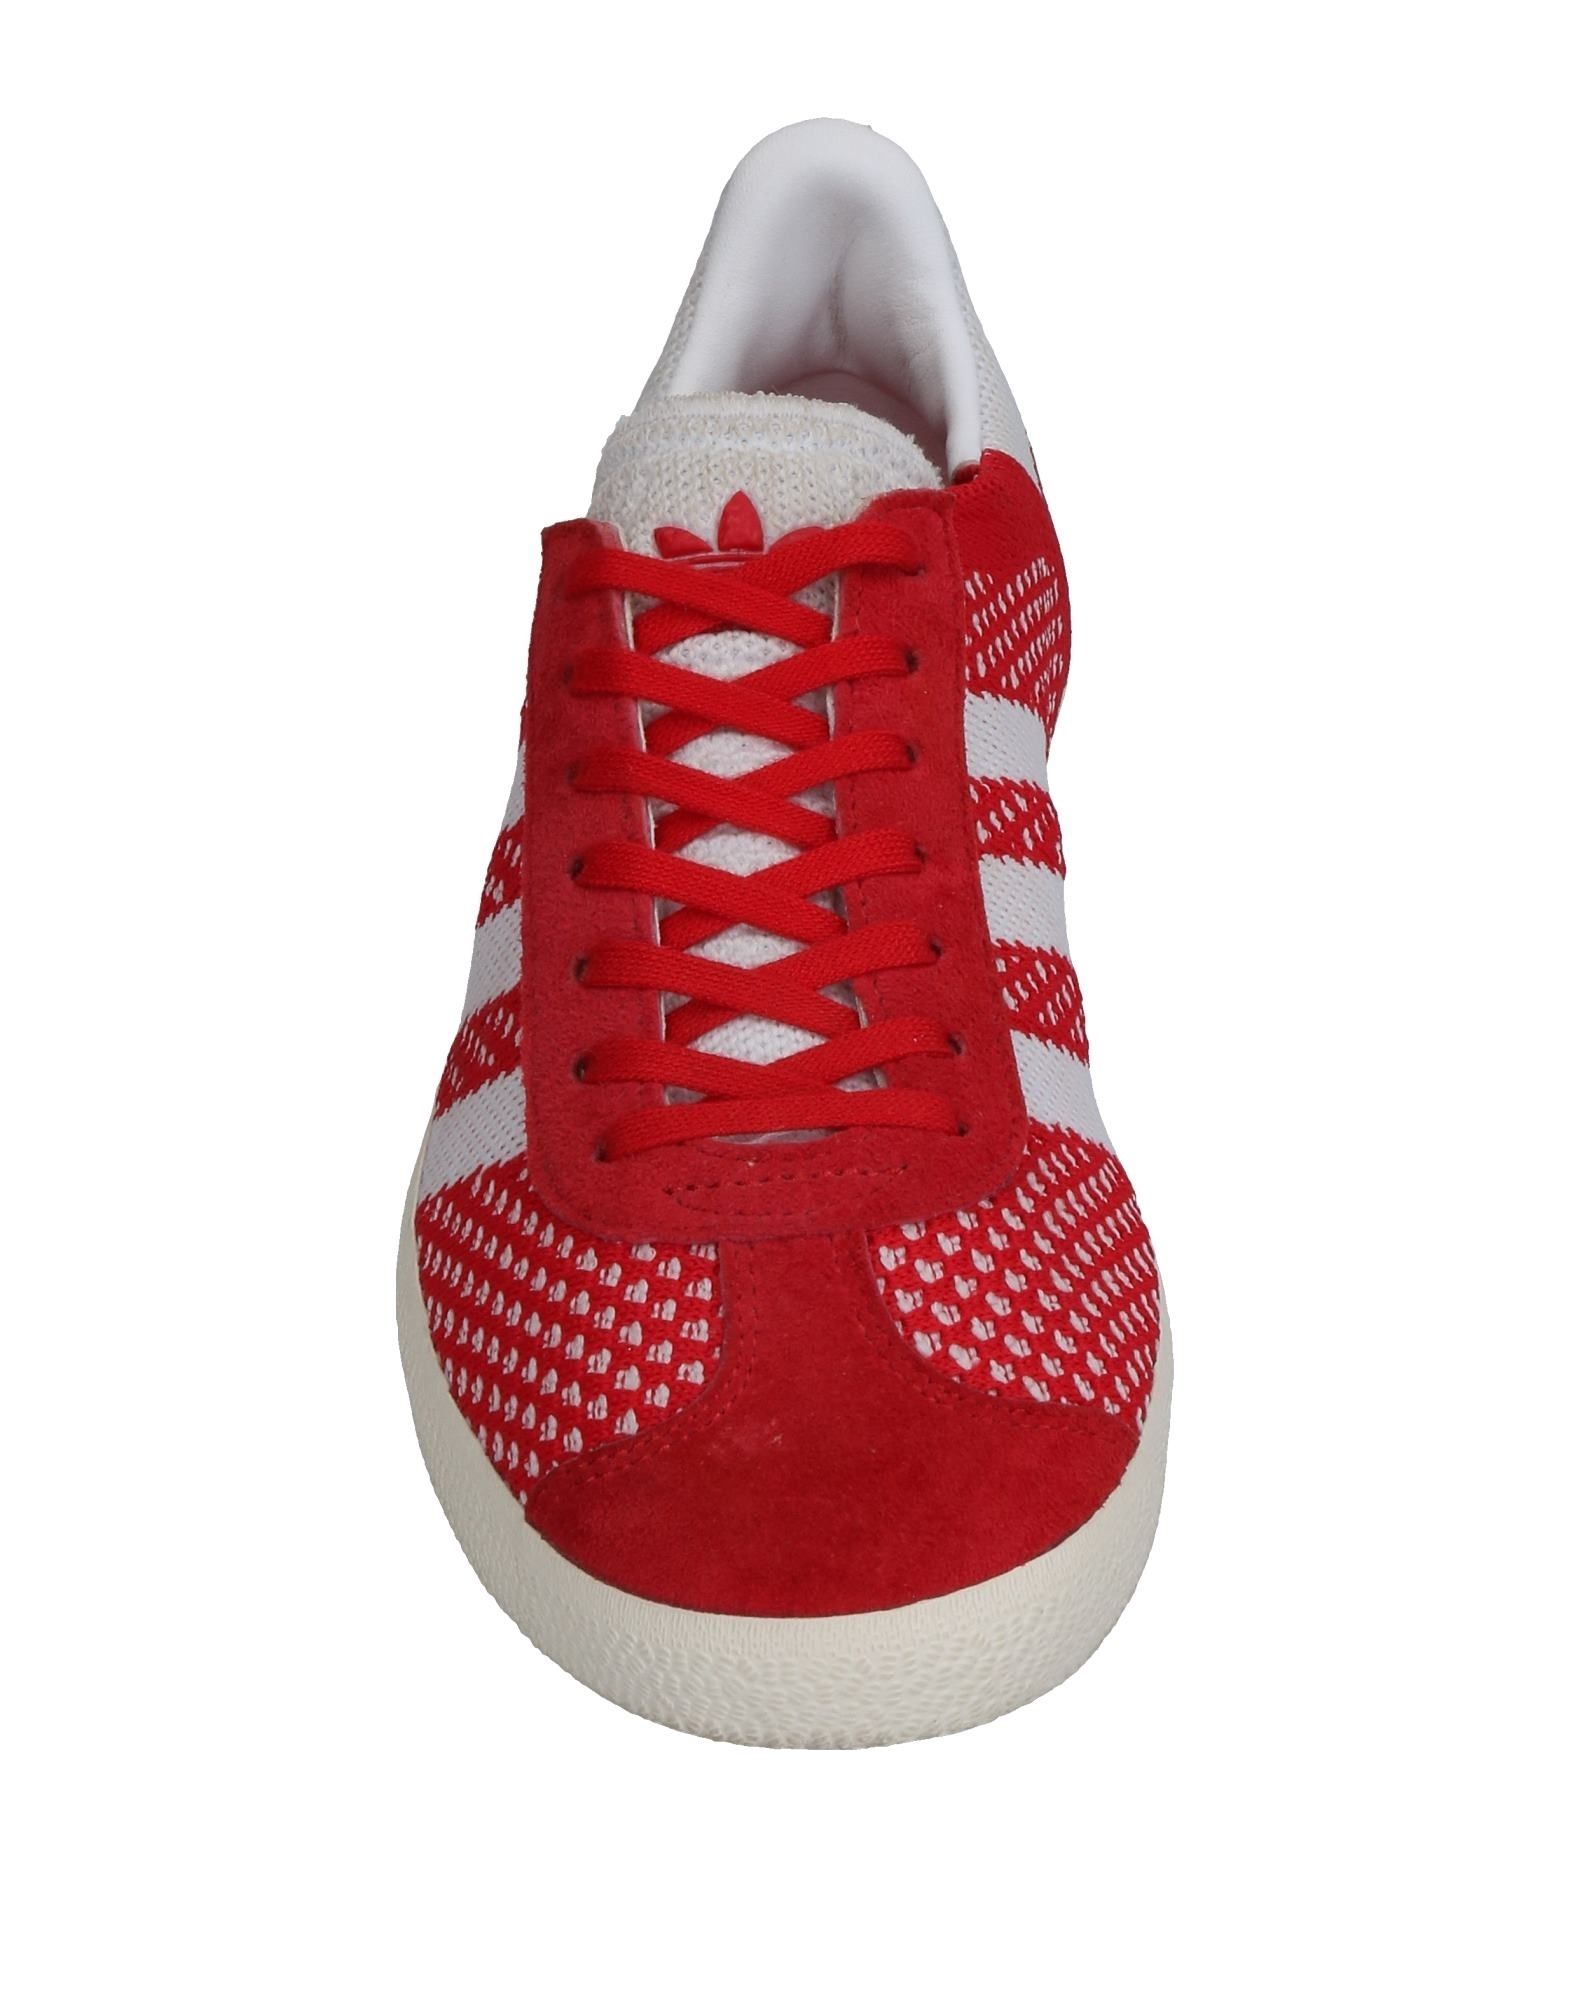 Sneakers Adidas Originals Homme - Sneakers Adidas Originals sur